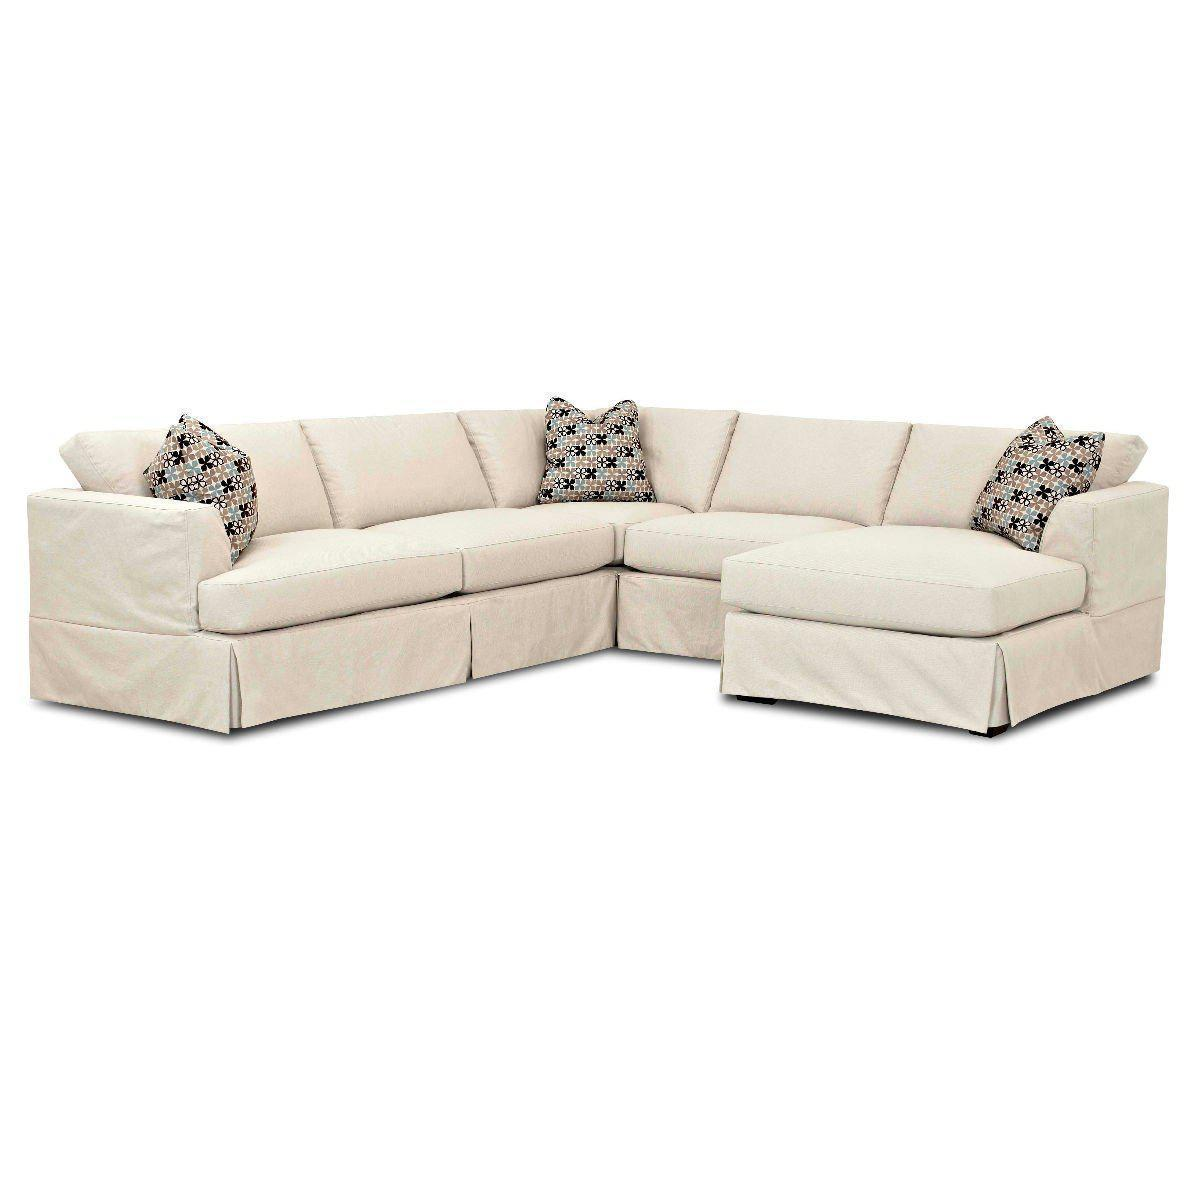 Melissa 4 pc Slipcover Chaise Sectional